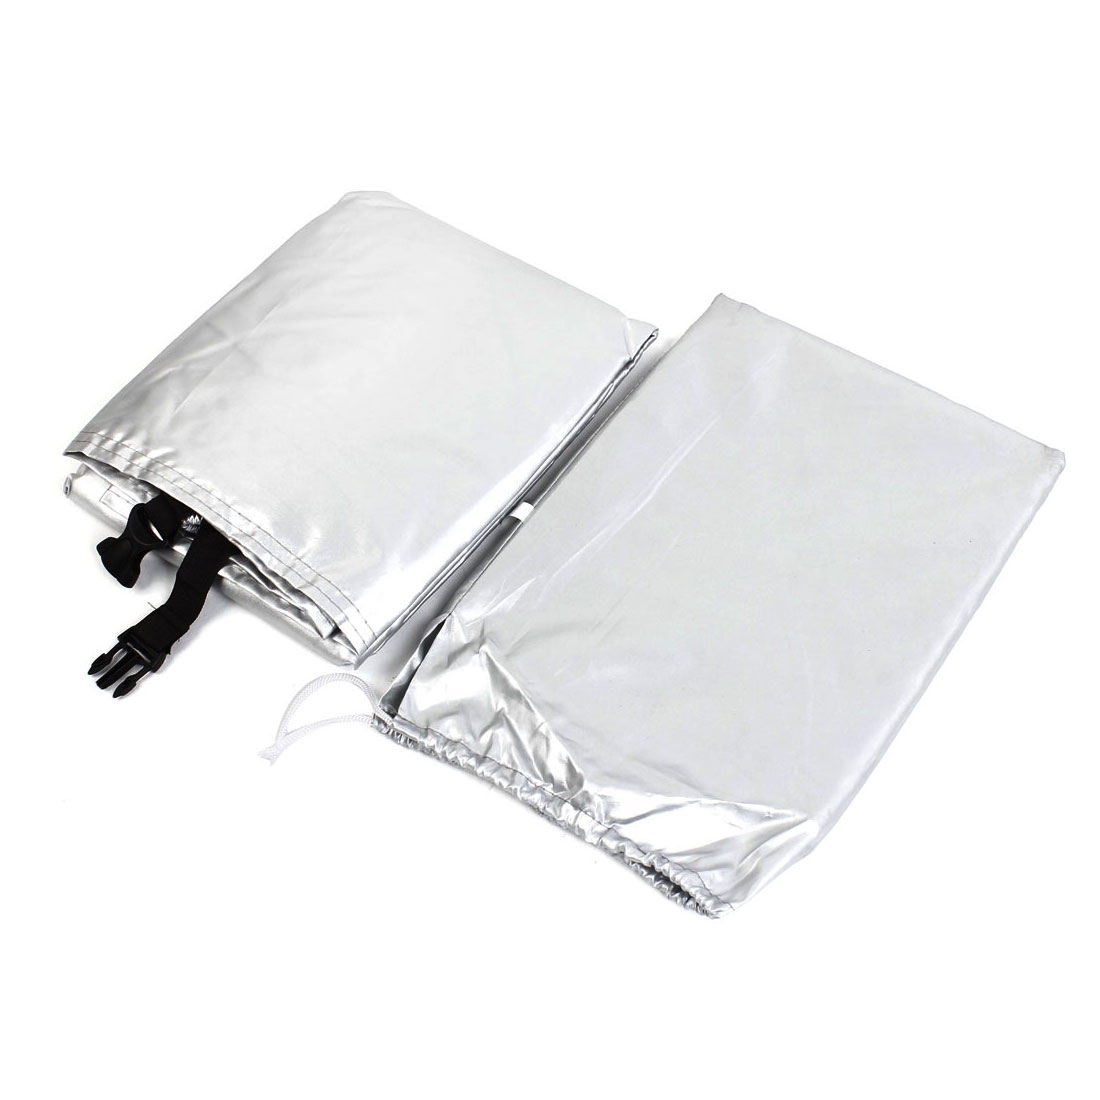 Black Silver Tone 180T Polyester Water Dust Resistant Bike Cover 170x60x85cm